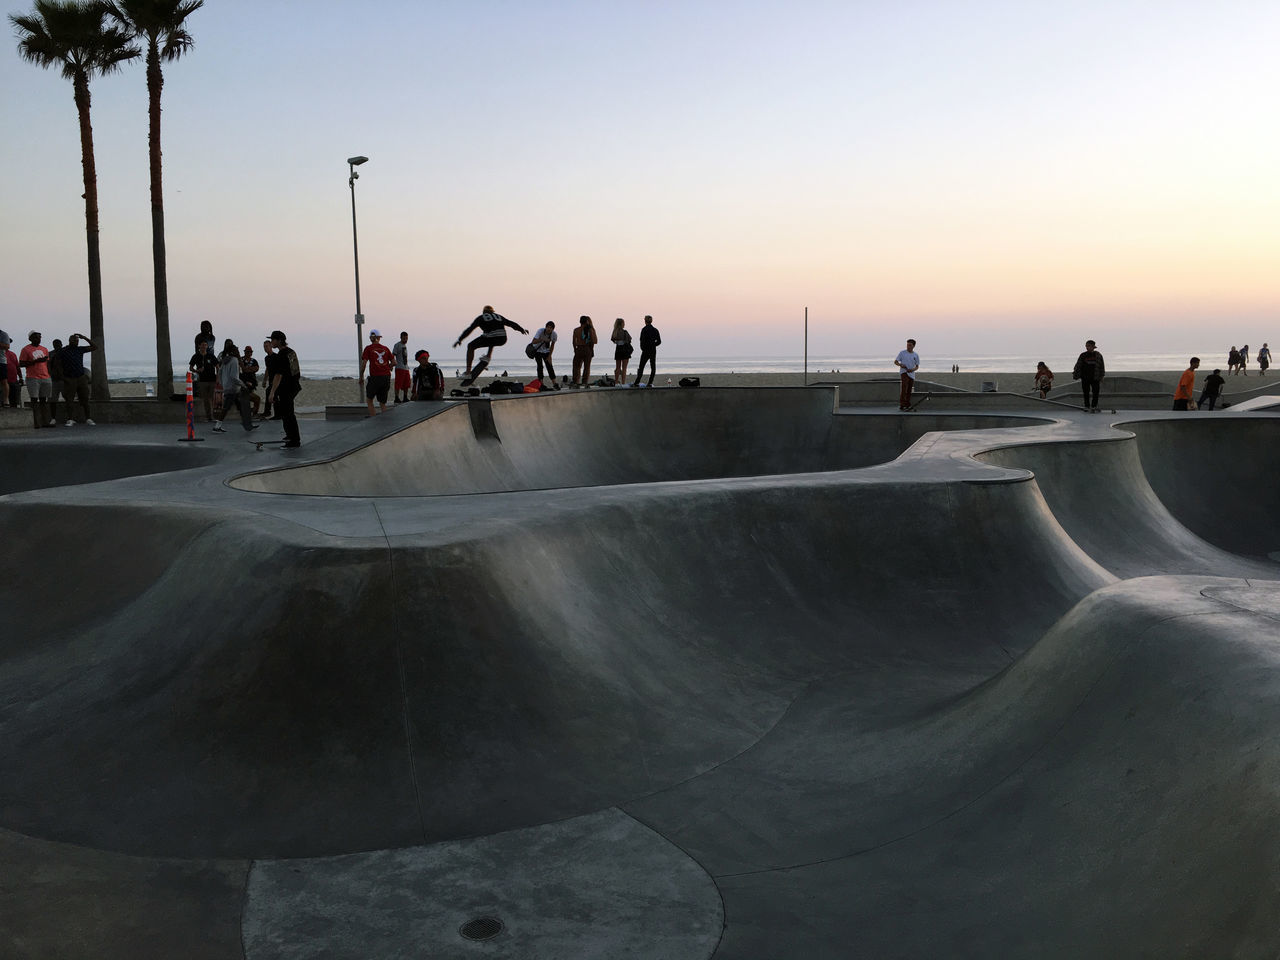 sunset, large group of people, real people, leisure activity, lifestyles, sport, weekend activities, water, skateboard park, travel destinations, vacations, enjoyment, nature, beach, men, outdoors, sky, sea, clear sky, beauty in nature, day, people